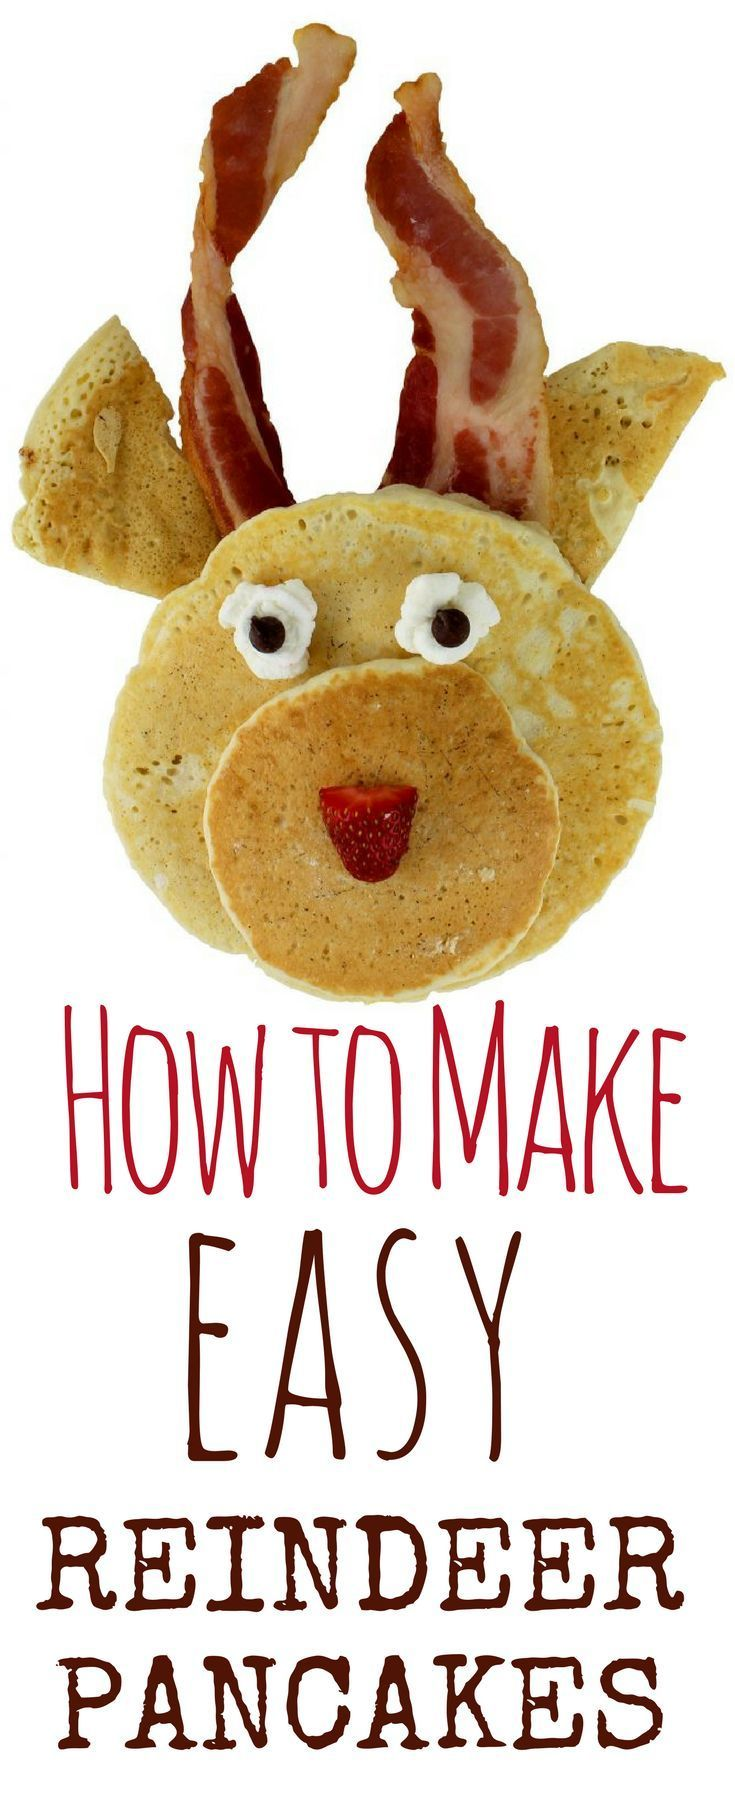 How to Make Easy Reindeer Pancakes: Christmas Breakfast Idea for Kids